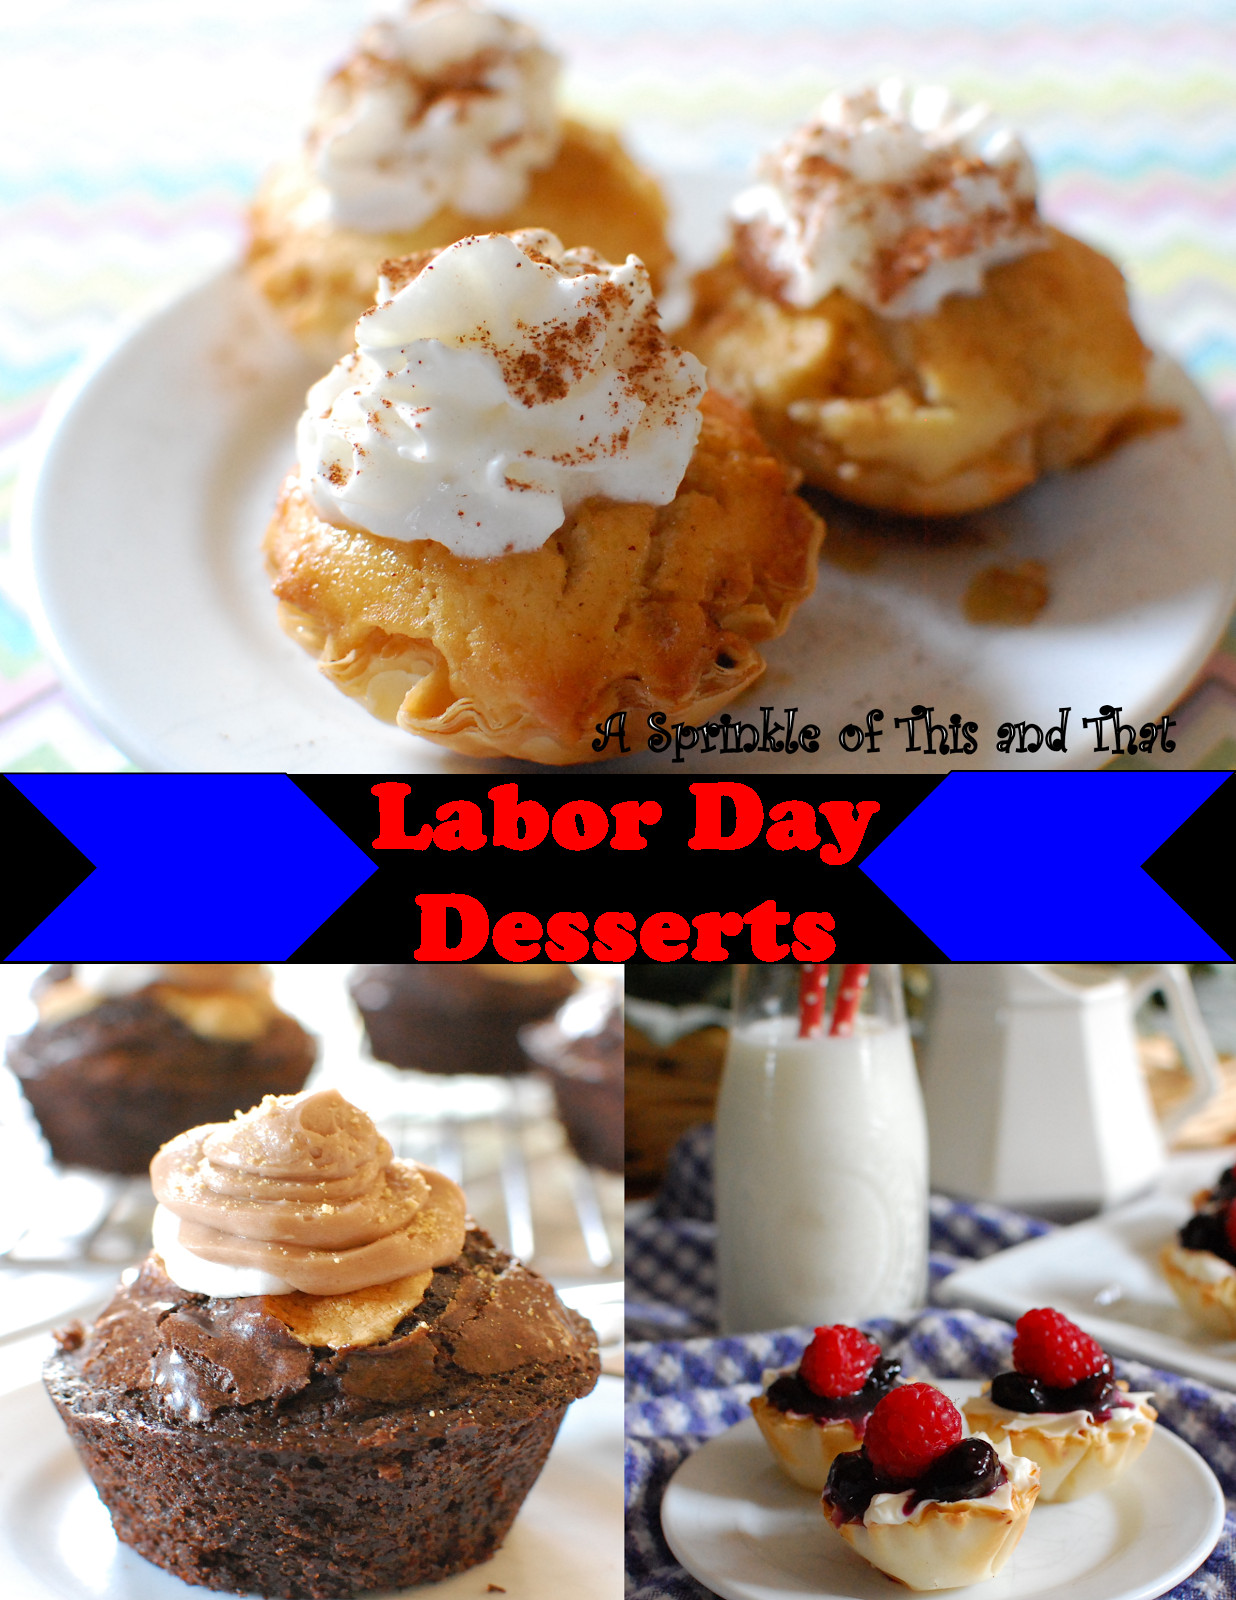 Labor Day Desserts  A Sprinkle of This and That Labor Day Desserts